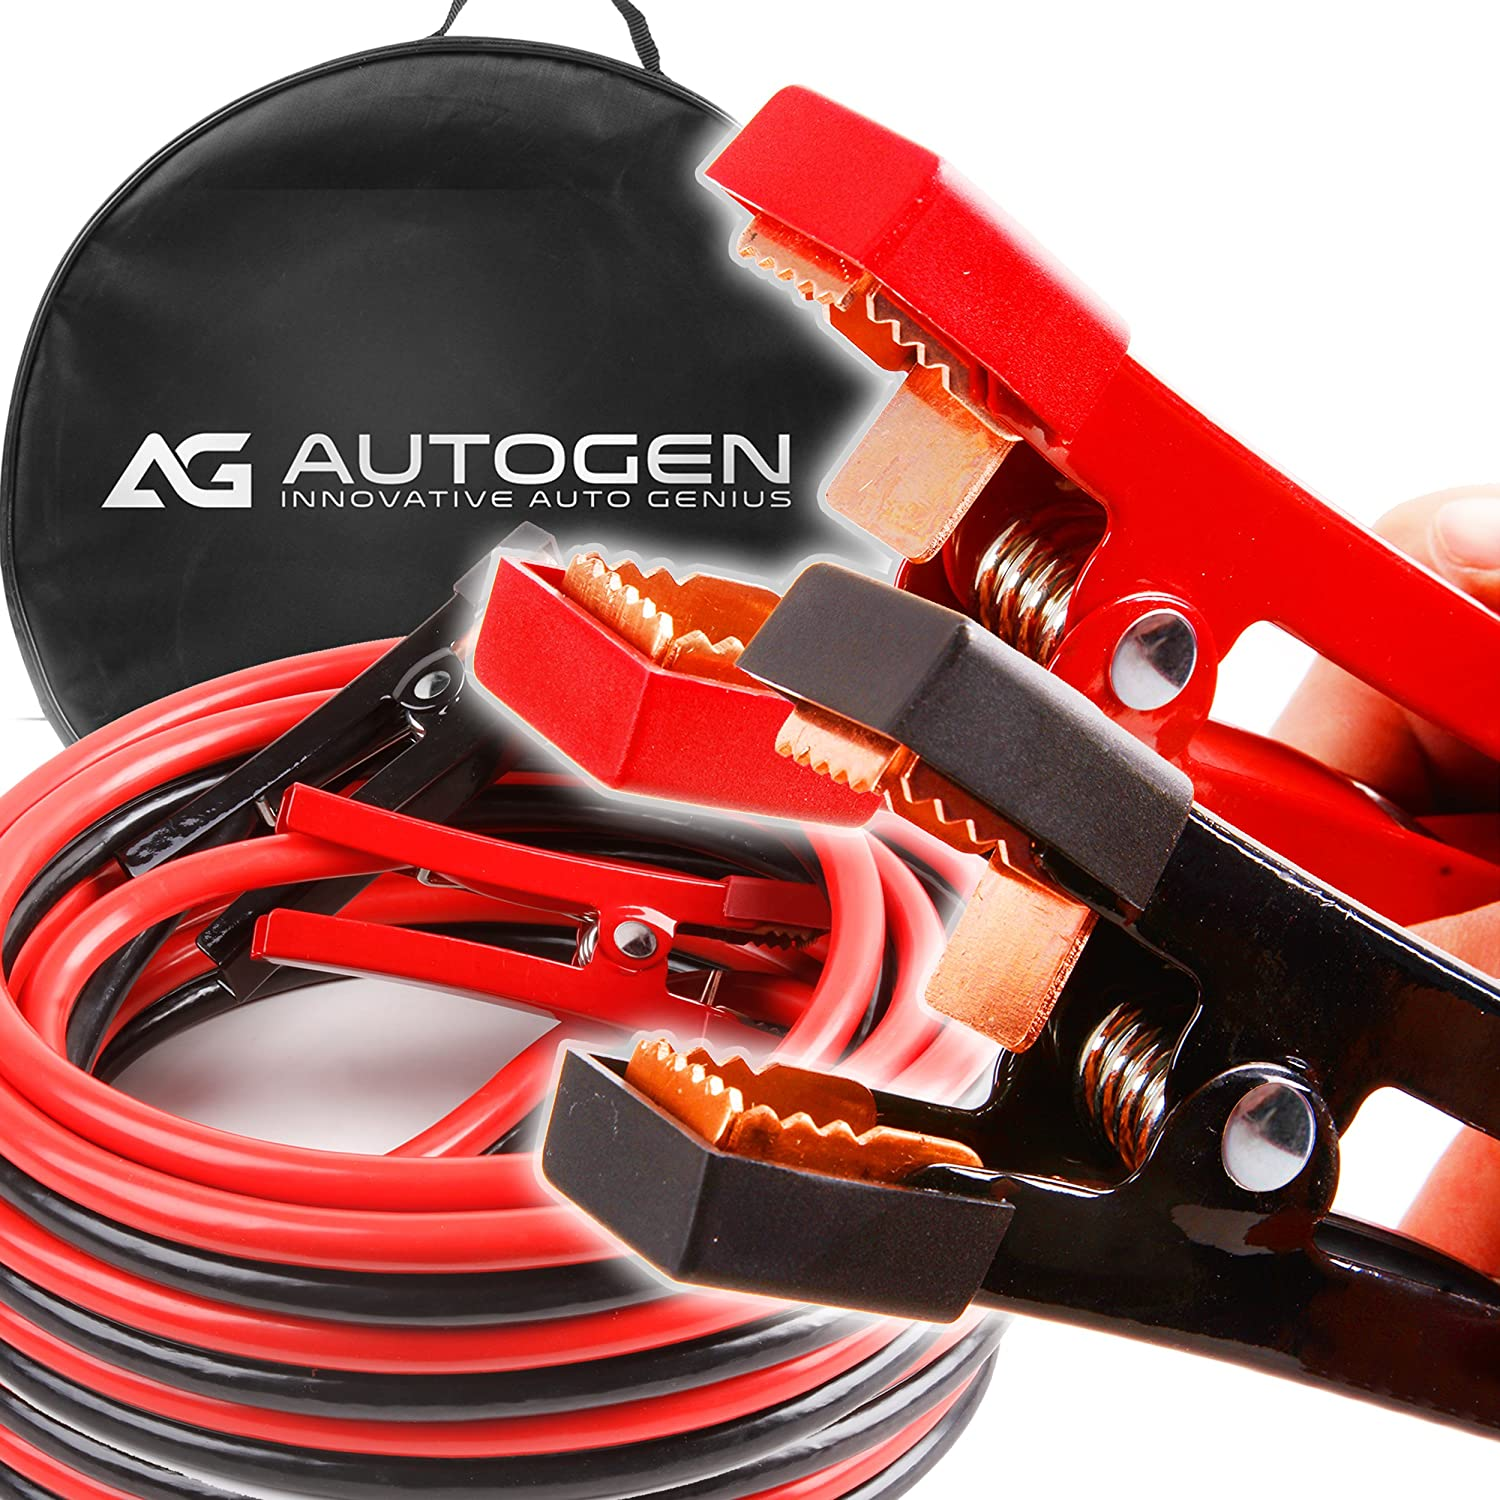 Heavy Duty Jumper Cables 1 Gauge X 25ft 900a Booster Innovative Wiring Strongest And Longest With 100 Copper Jaws By Autogen Automotive